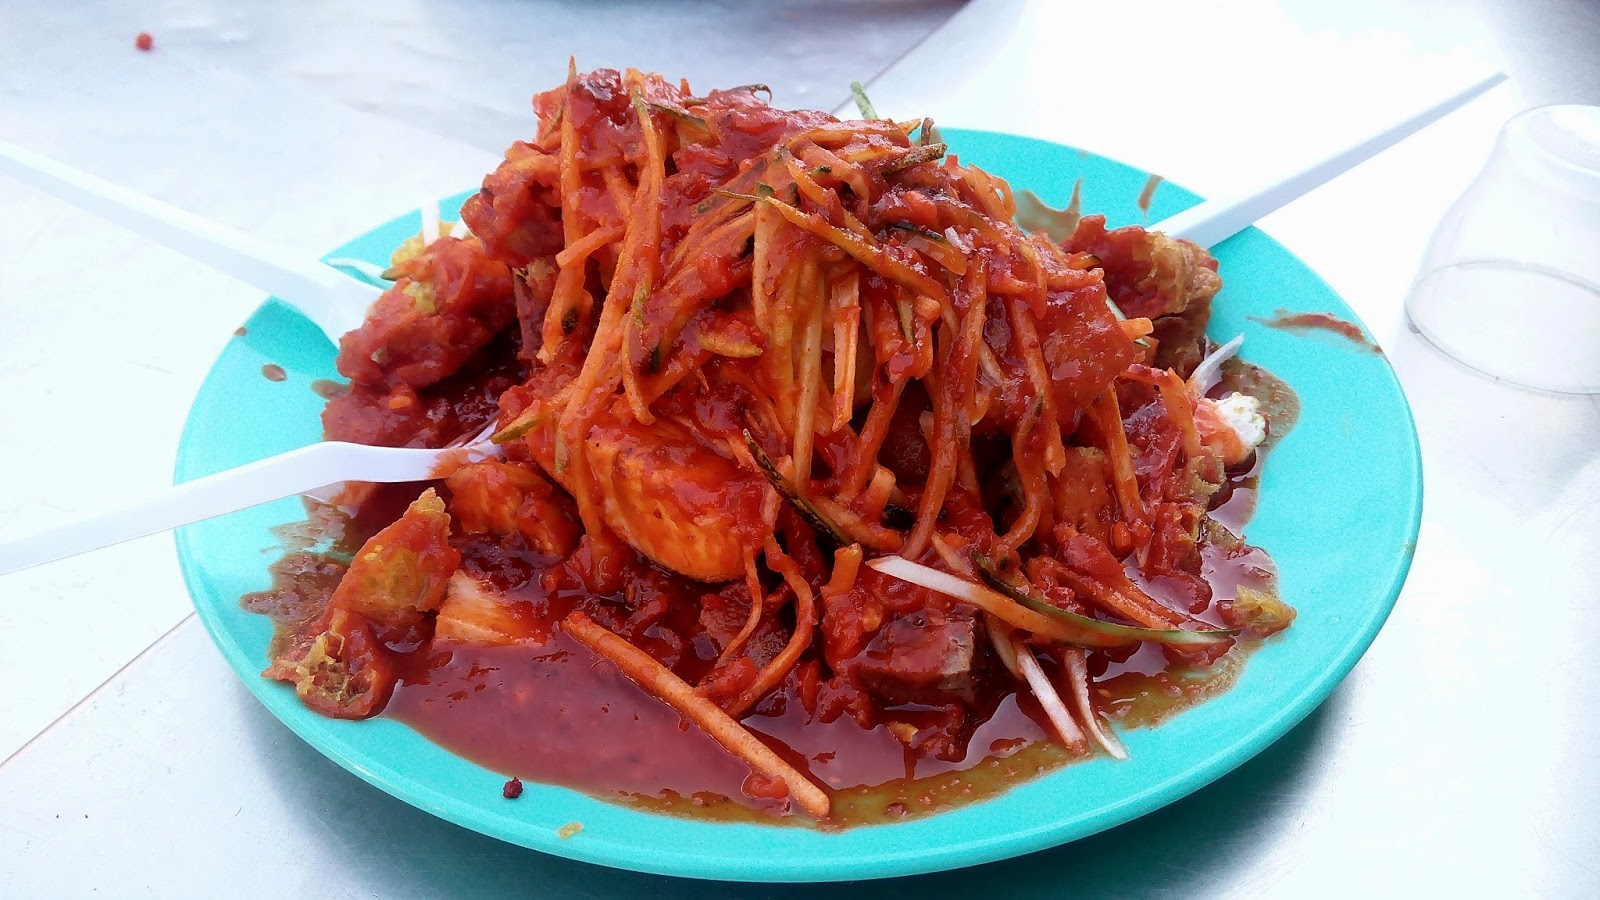 Pasembor sedap, pasembor, awesome food, gambar cantik, arzmoha, food review